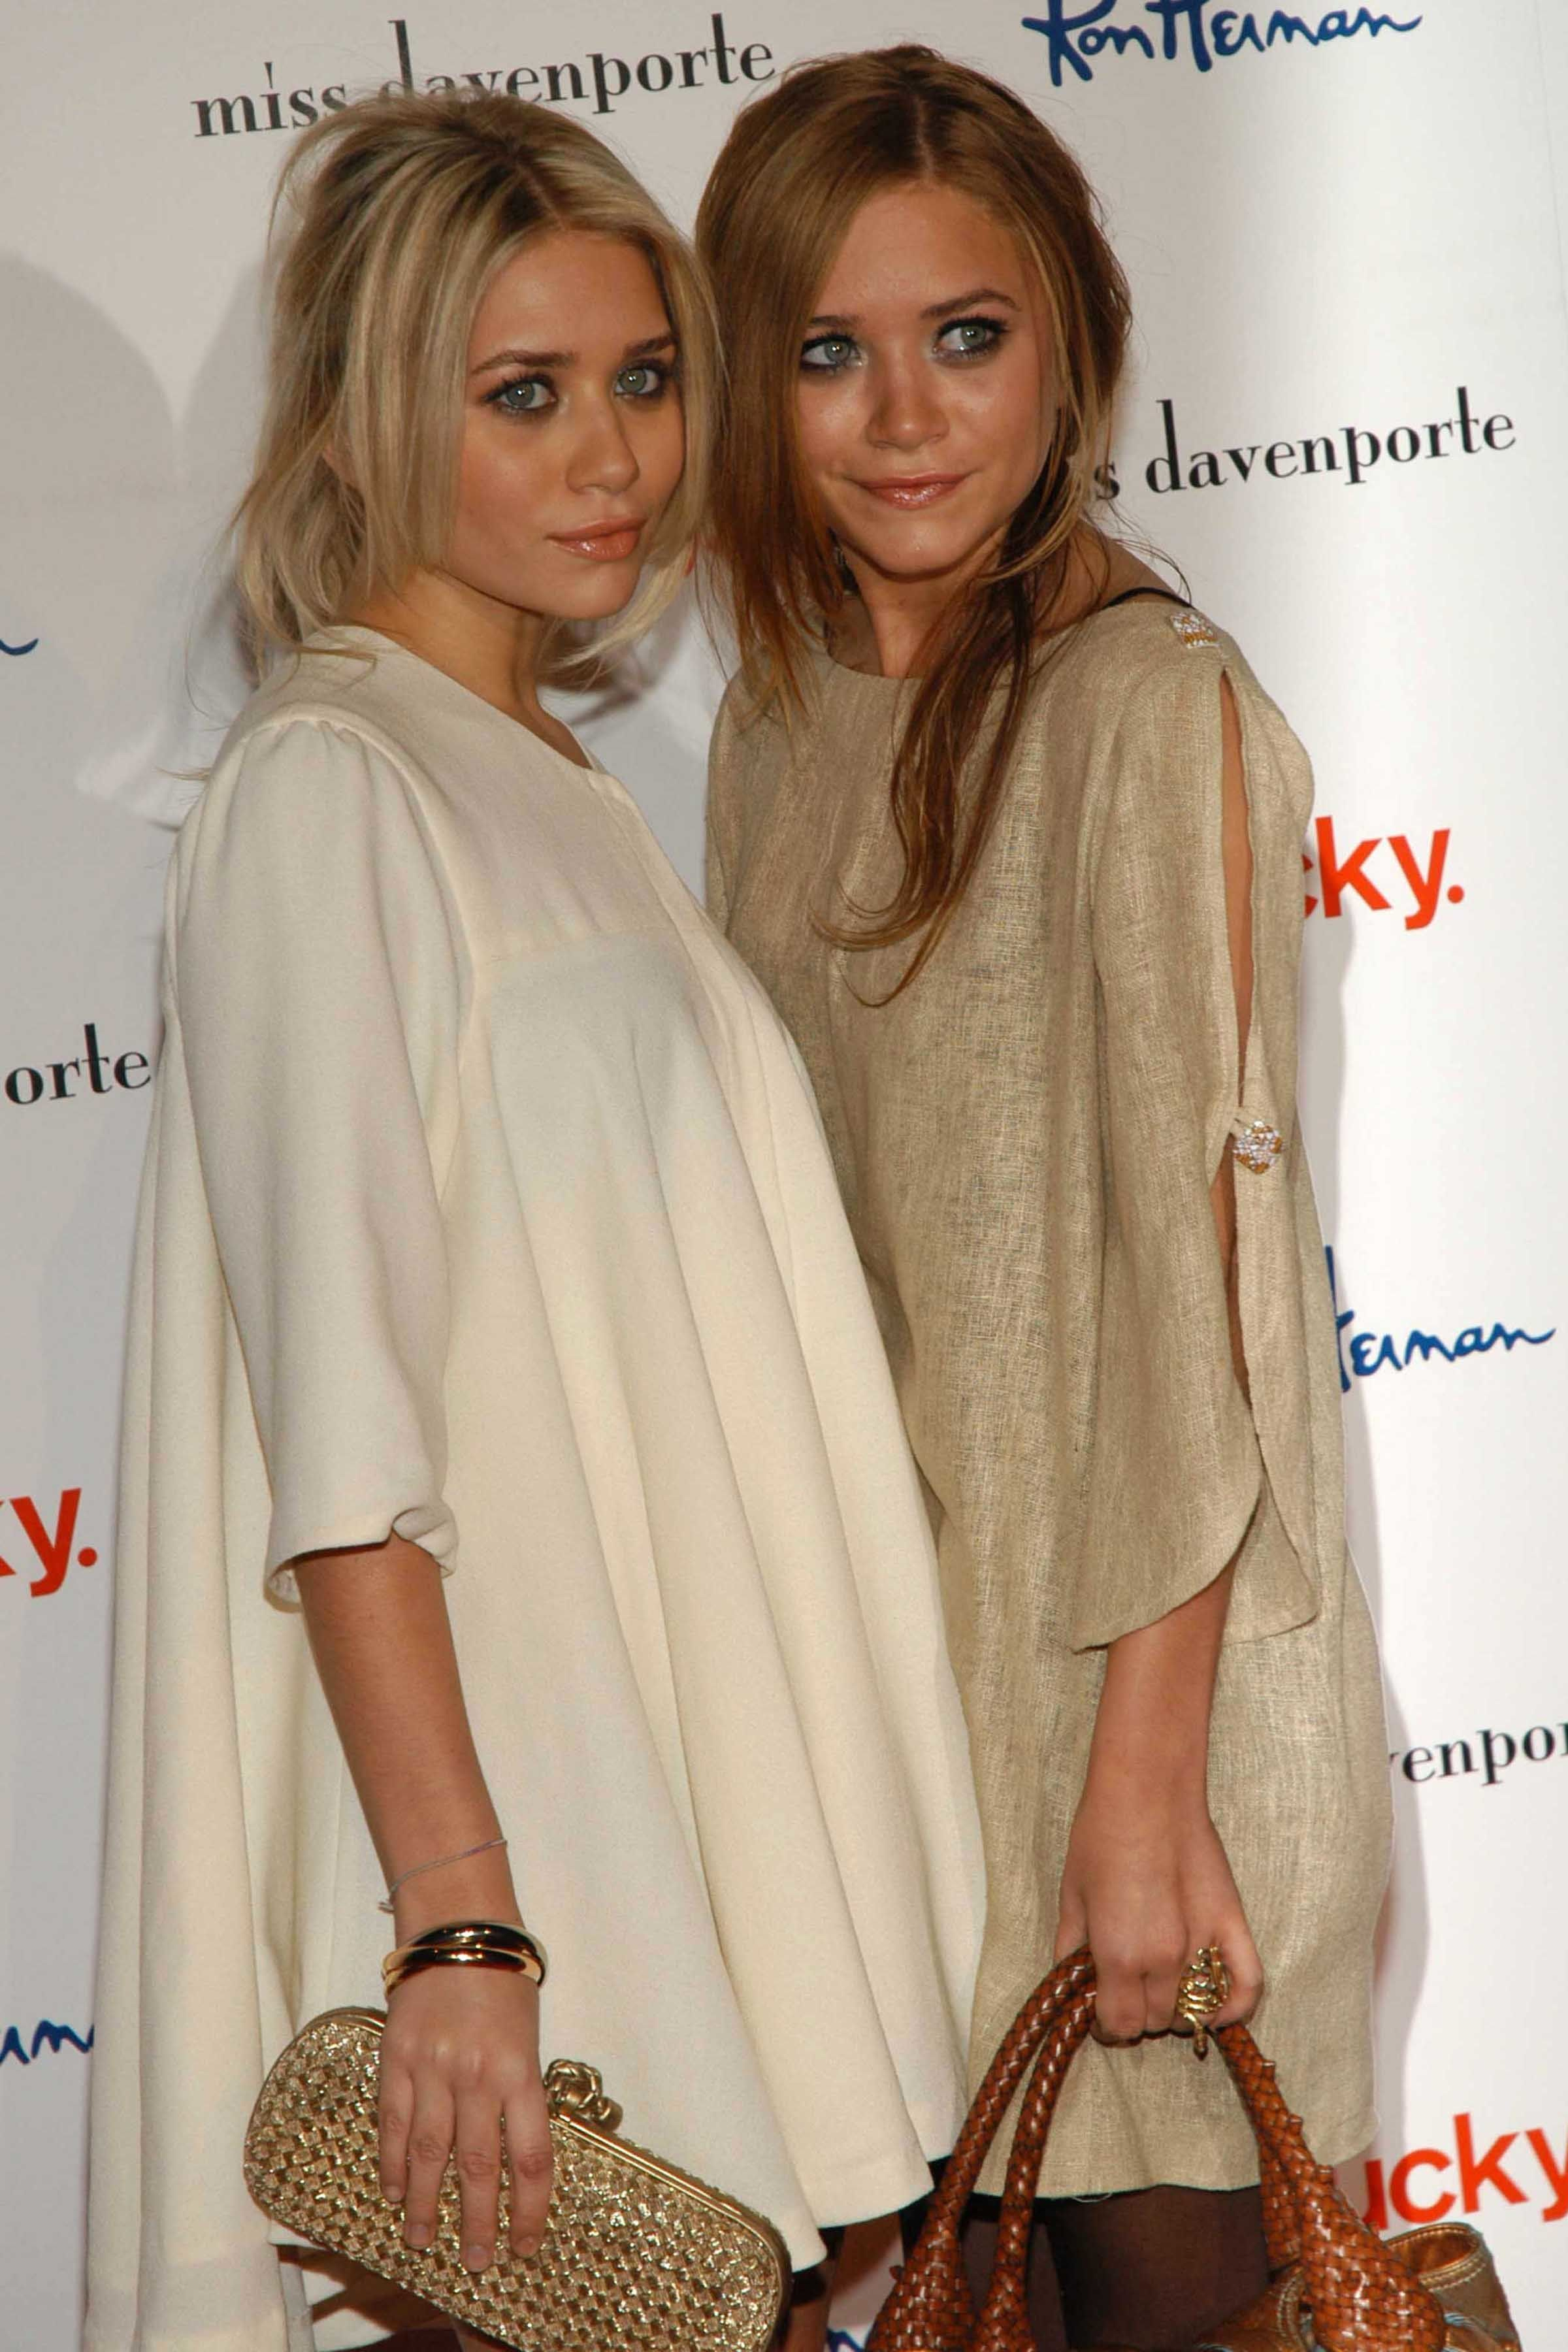 HOLLYWOOD, CA - NOVEMBER 17: Ashley Olsen and Mary-Kate Olsen attend Lucky Magazine and Ron Herman host a cocktail party and trunk show for Miss Davenporte-Arrivals at Fred Segal on November 17, 2005 in Hollywood, CA. (Photo by Stefanie Keenan/Patrick McMullan via Getty Images)